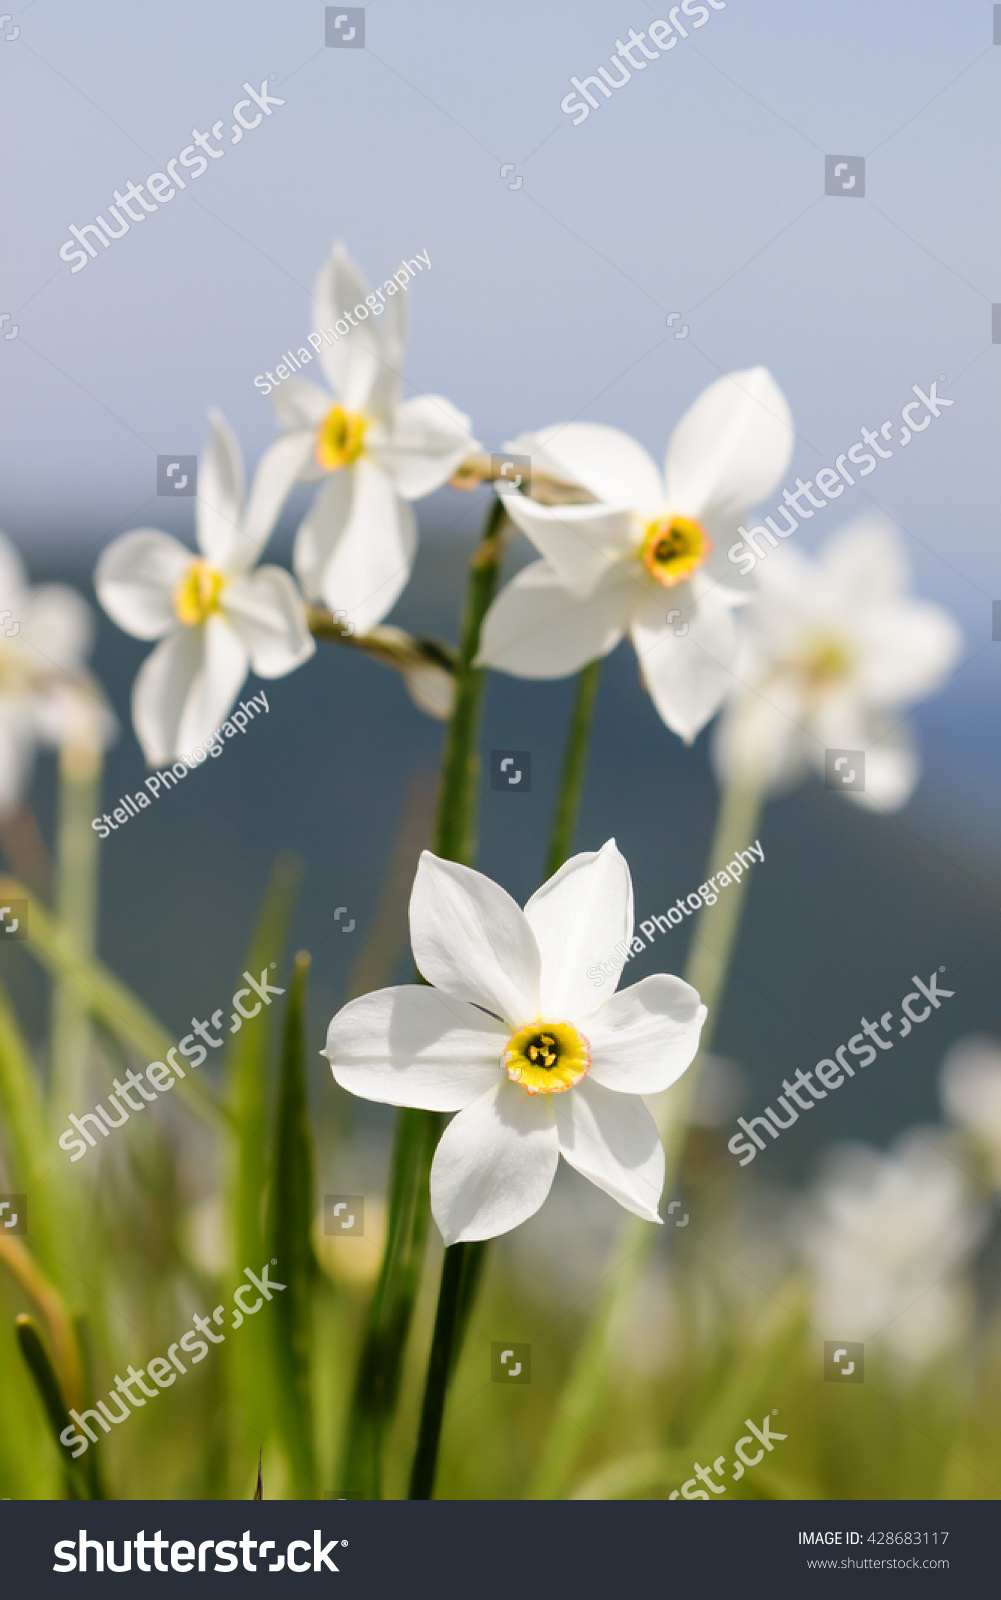 Blurred Image White Flowers Lily Rain Stock Photo Edit Now